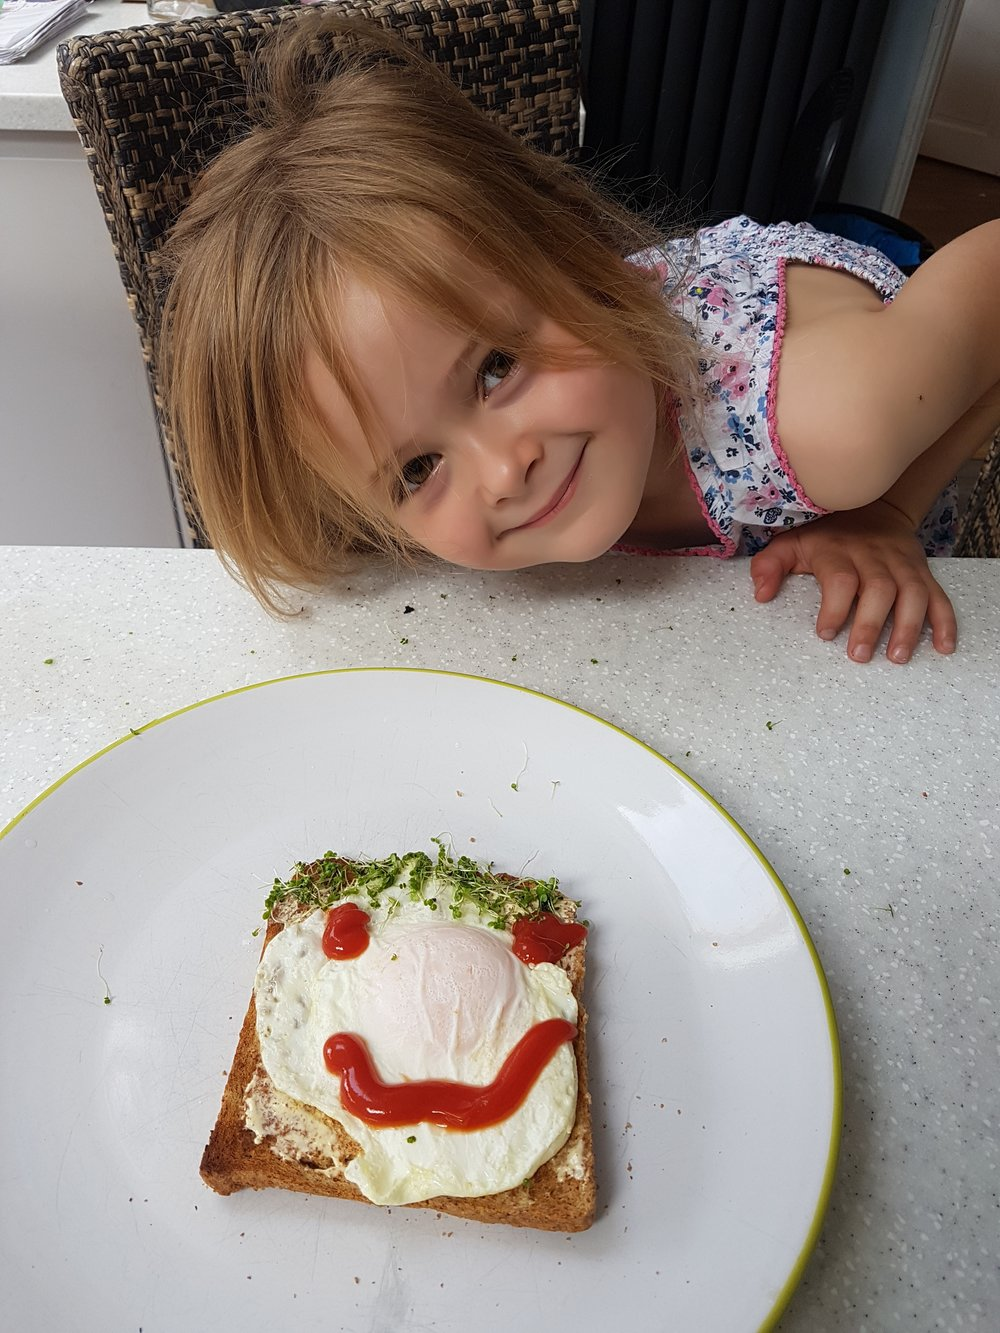 Big smiles all round. Runner up Sophie her fantastic eggy-entry